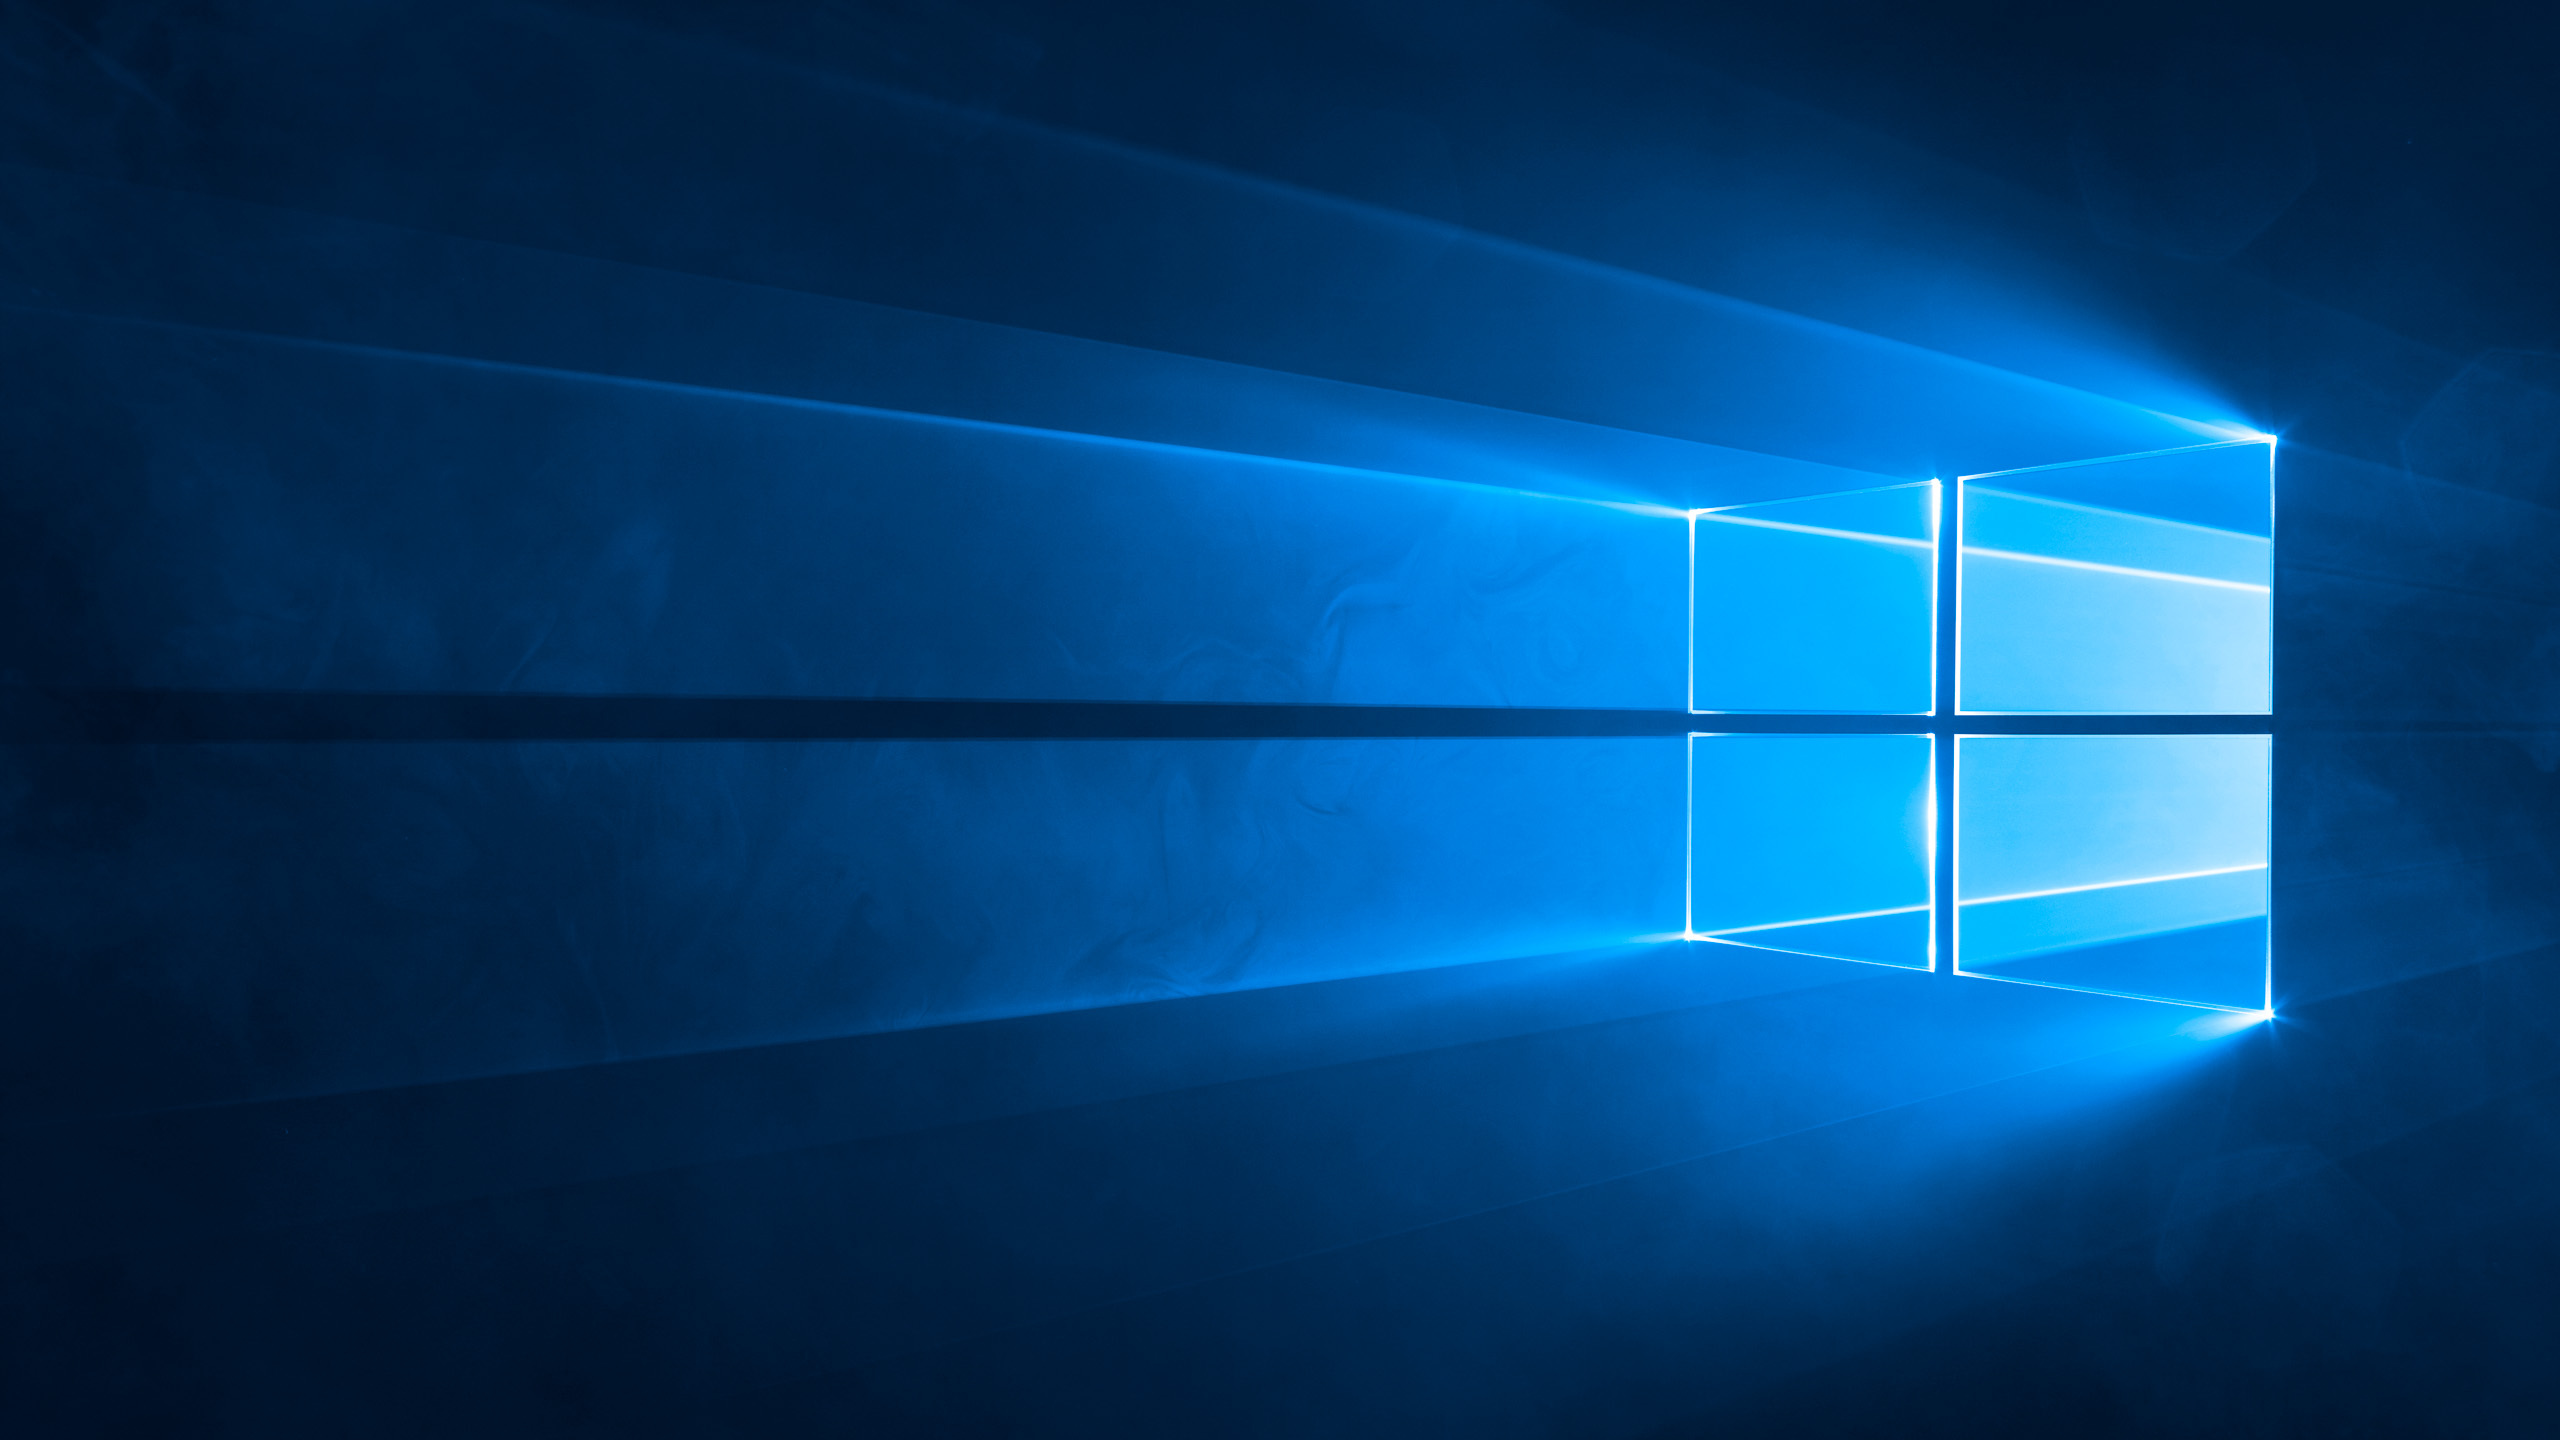 2560x1440 Windows 10 Original 1440p Resolution Hd 4k Wallpapers Images Backgrounds Photos And Pictures